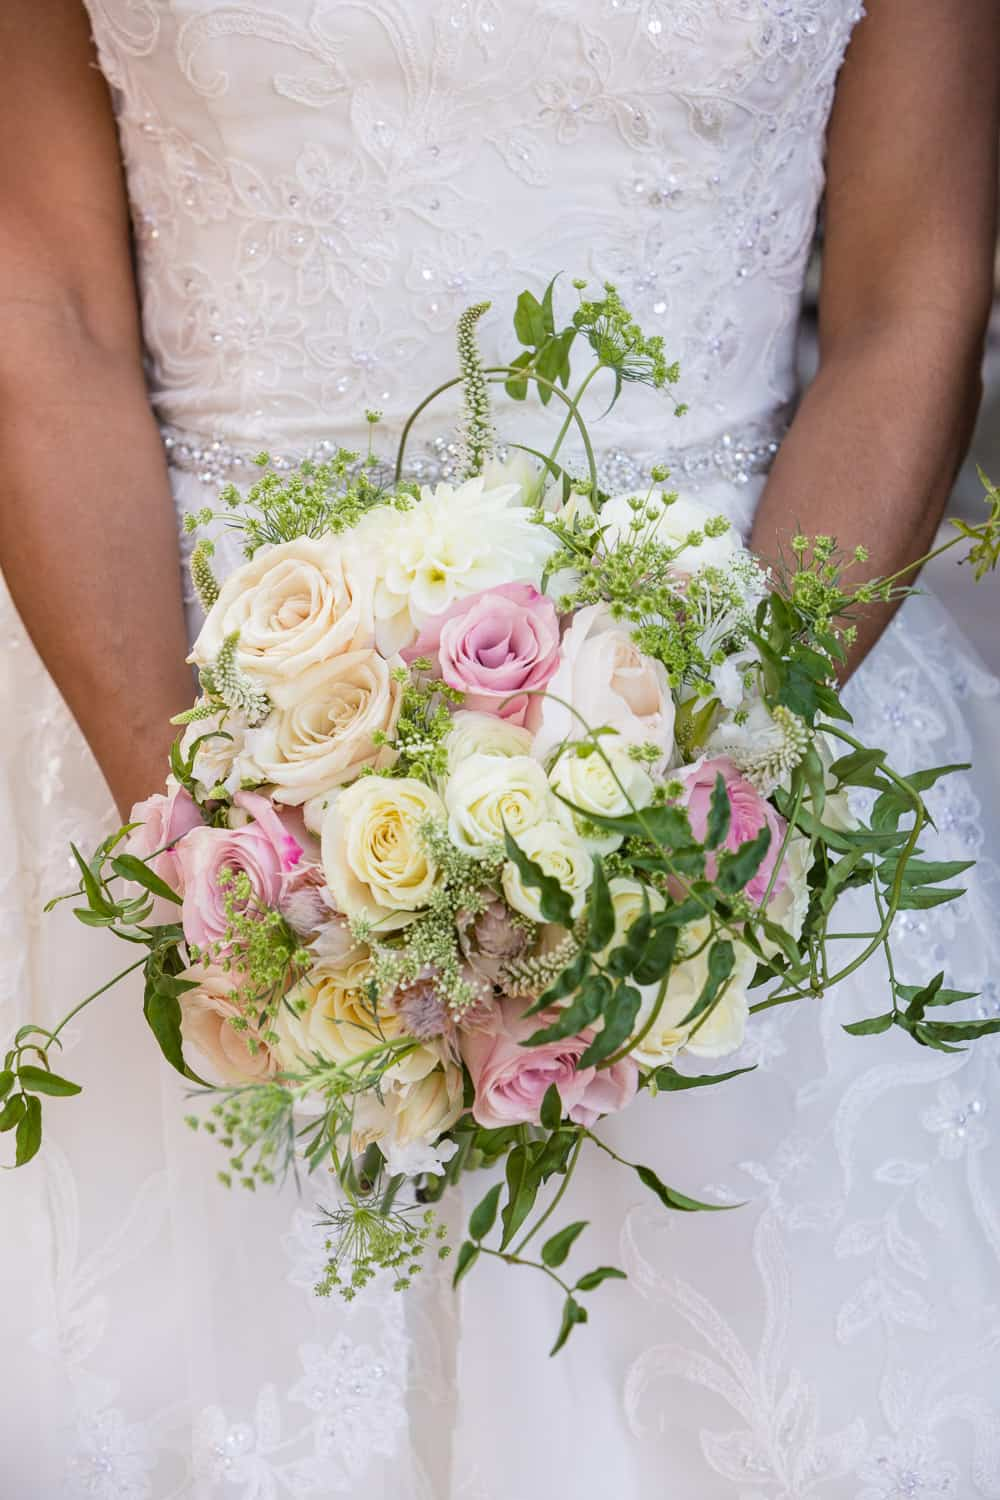 Bridal flowers from Stacy K.